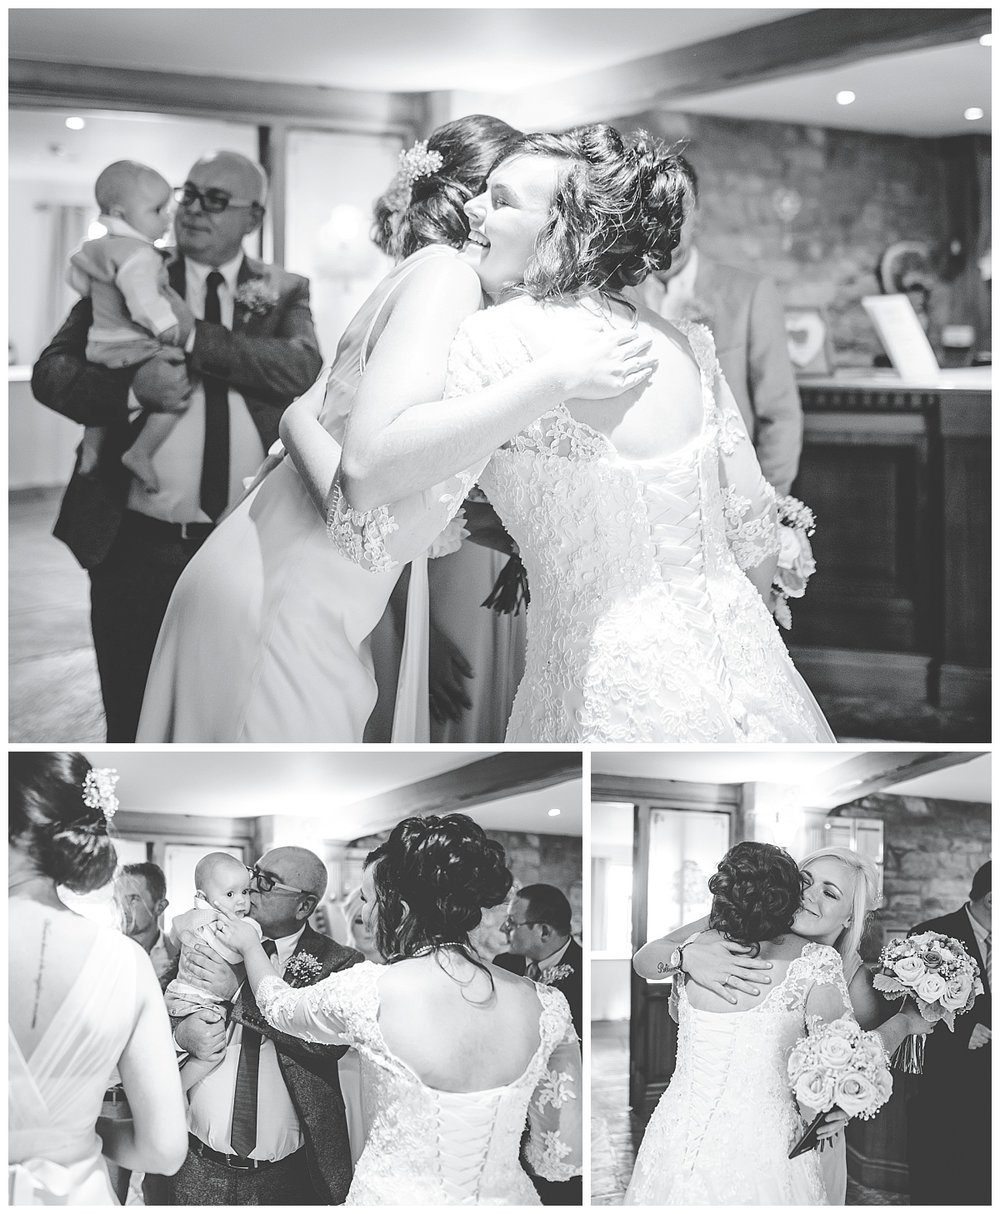 Hugs from the bride to wedding gguests- Black and white wedding photography in lancashire